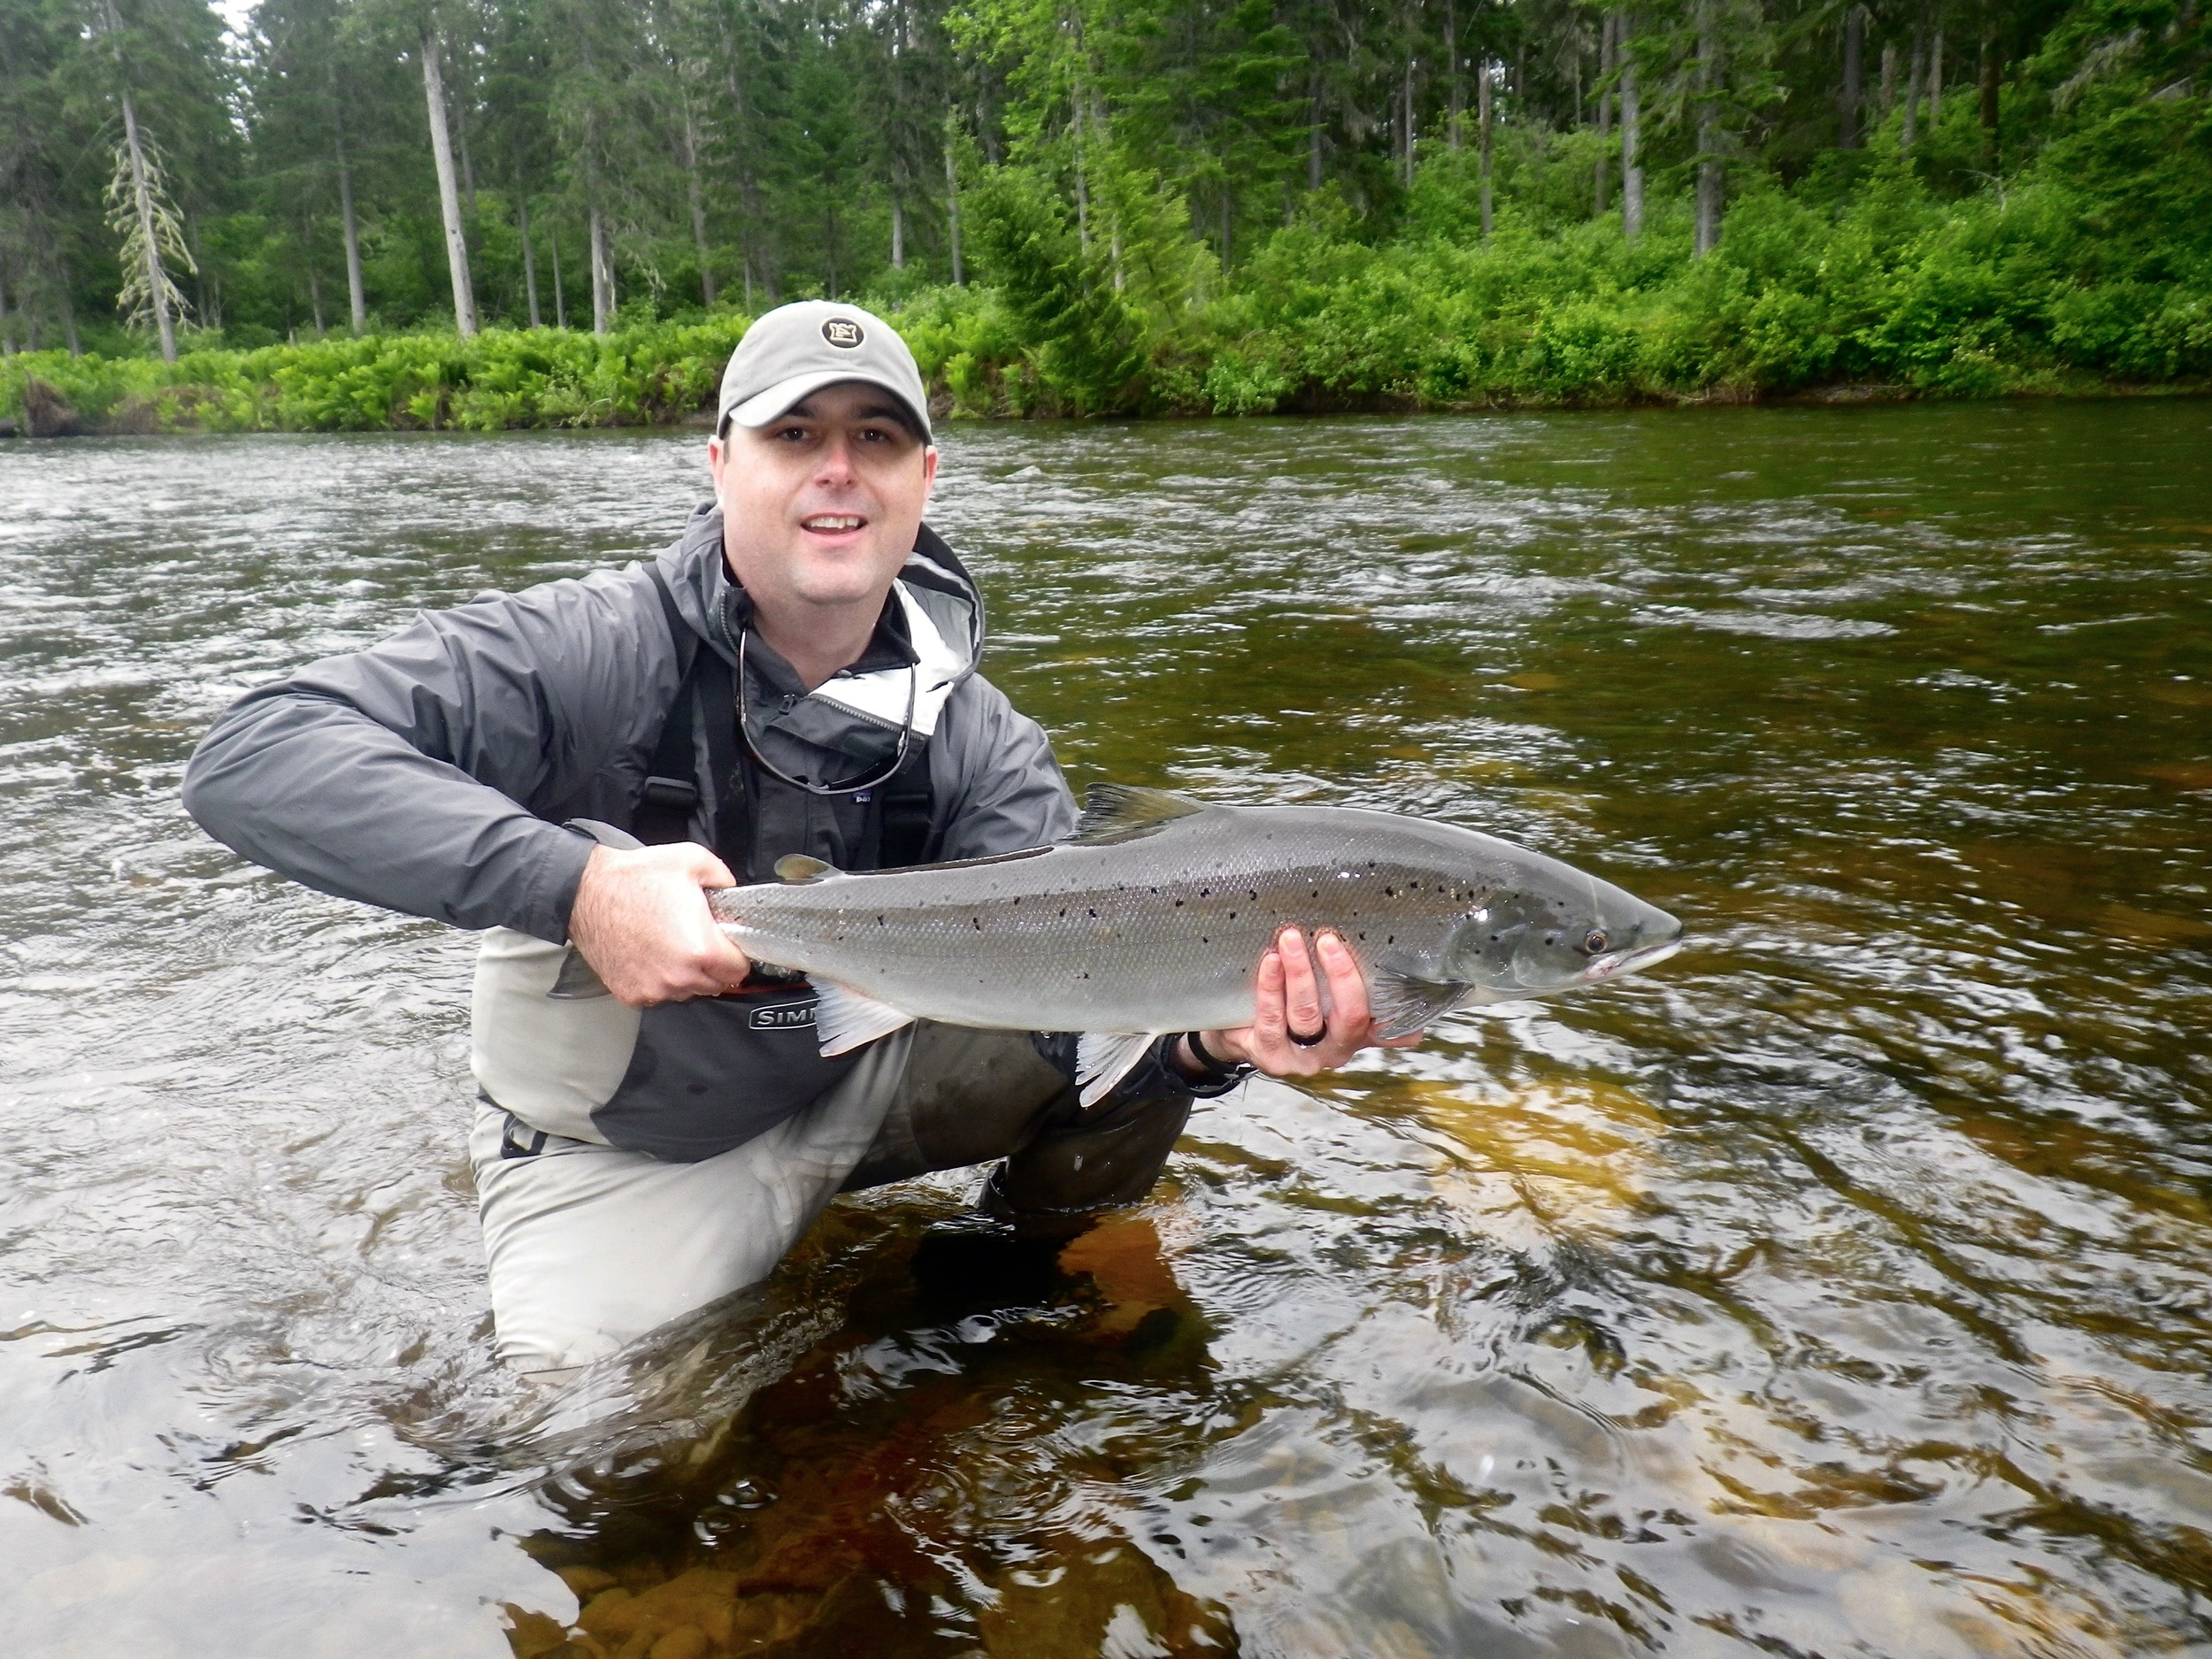 Will Doyle landed this fine salmon on the Grand Cascapedia, nice one Will!